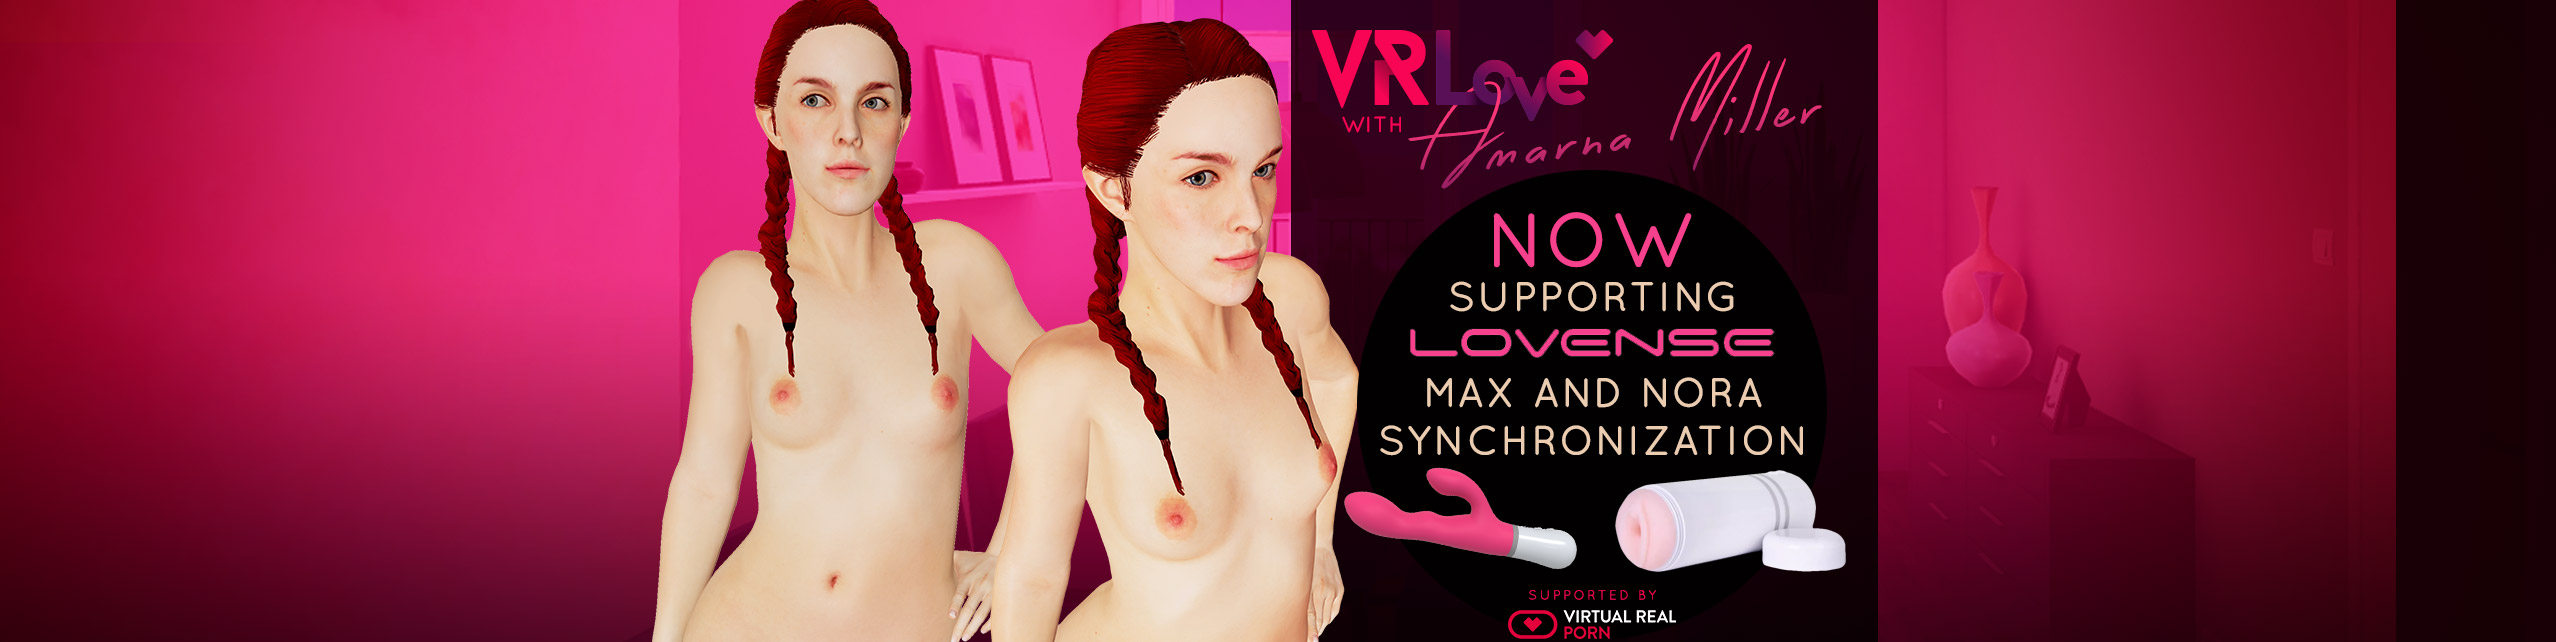 VR Love game teledildonics compatible